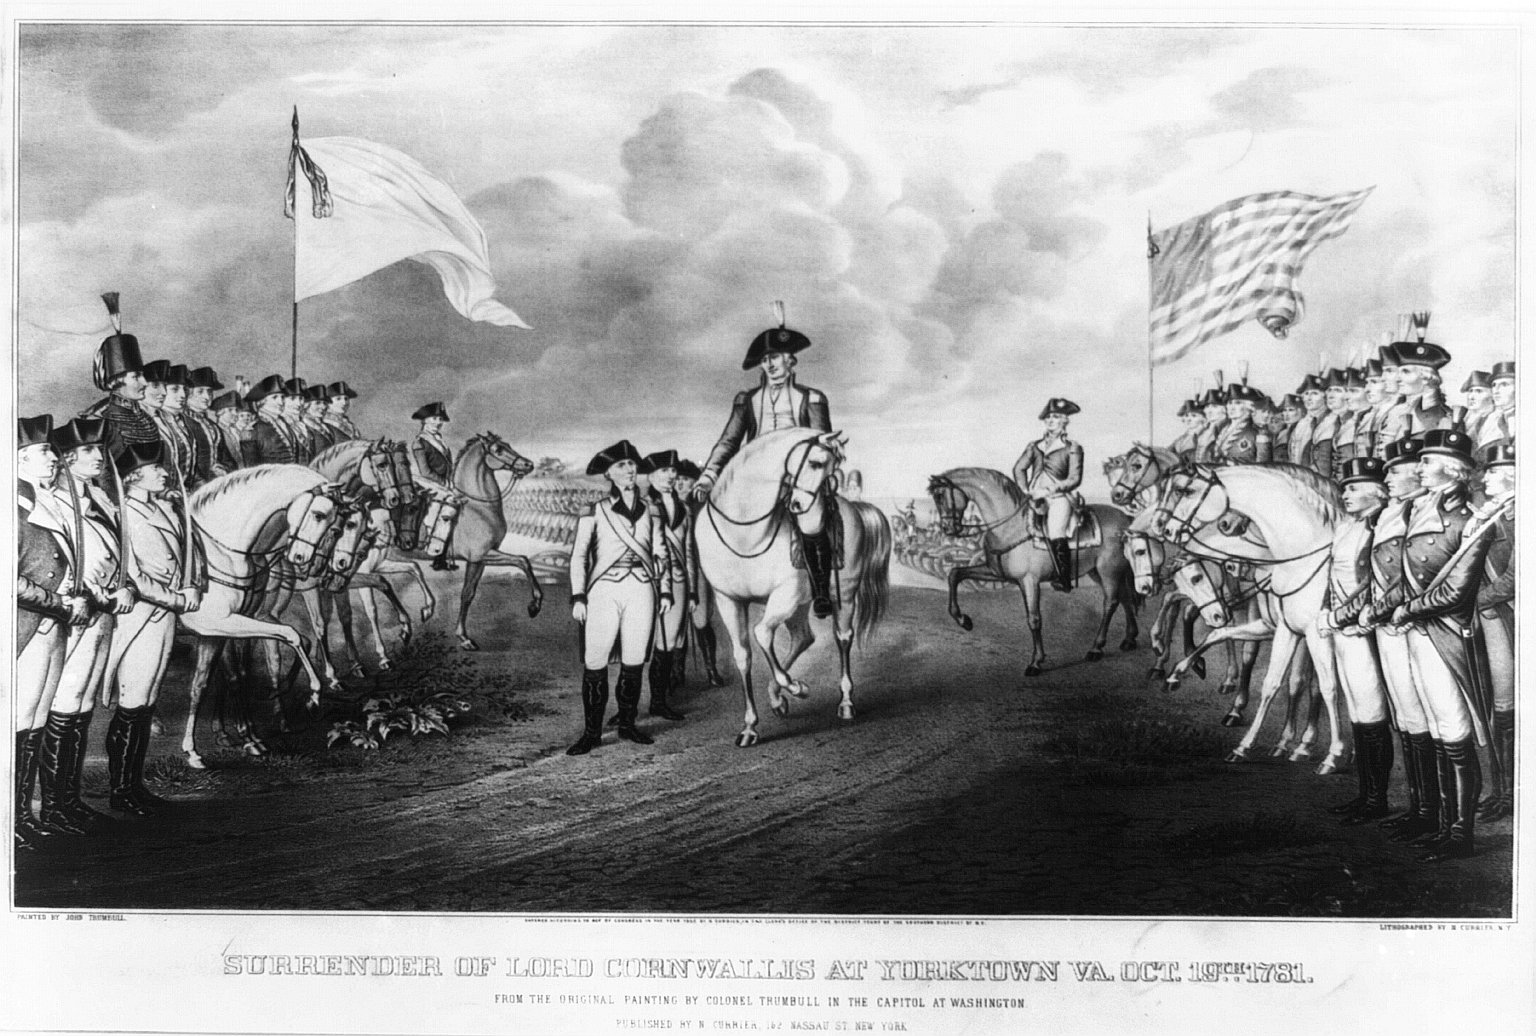 an overview of the surrender of cornwallis at yorktown in virginia Yorktown, virginia october 19, 1781 cornwallis' surrender ended a disastrous southern campaign for the british army.